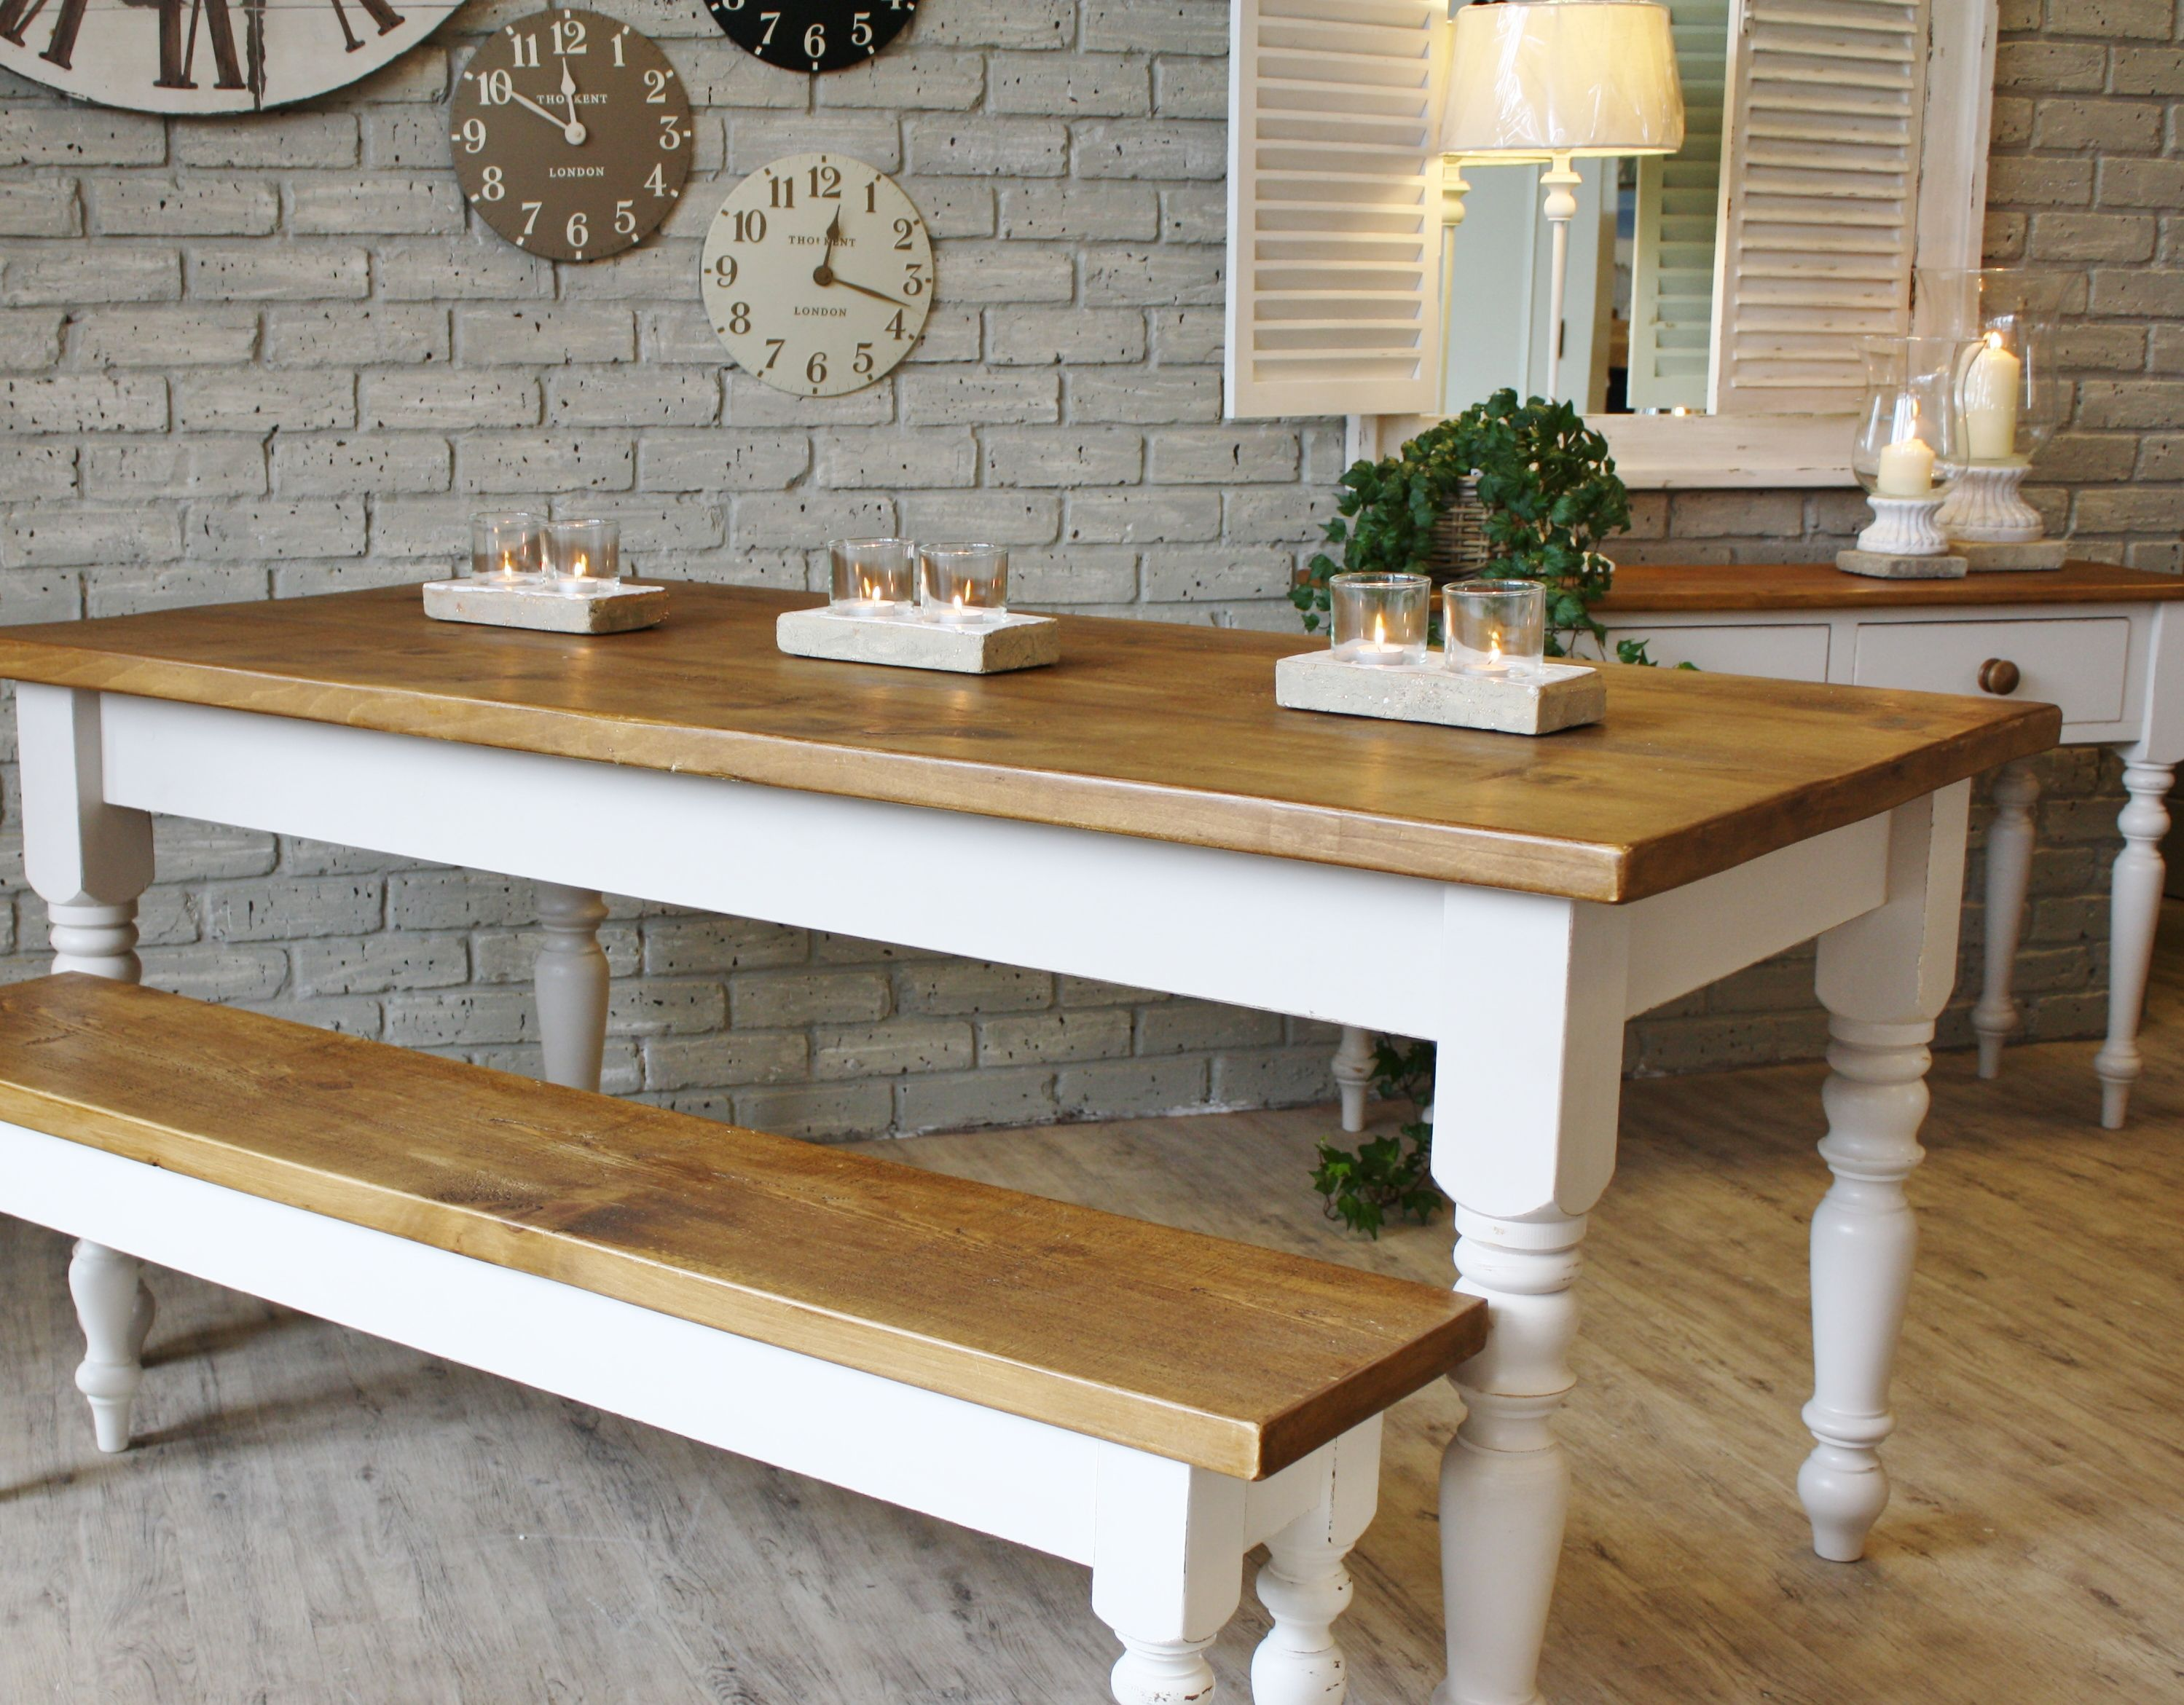 Kitchen Table With Bench Seating Furniture Traditional Farmhouse Designs Rectangle Wooden And Brick Exposed